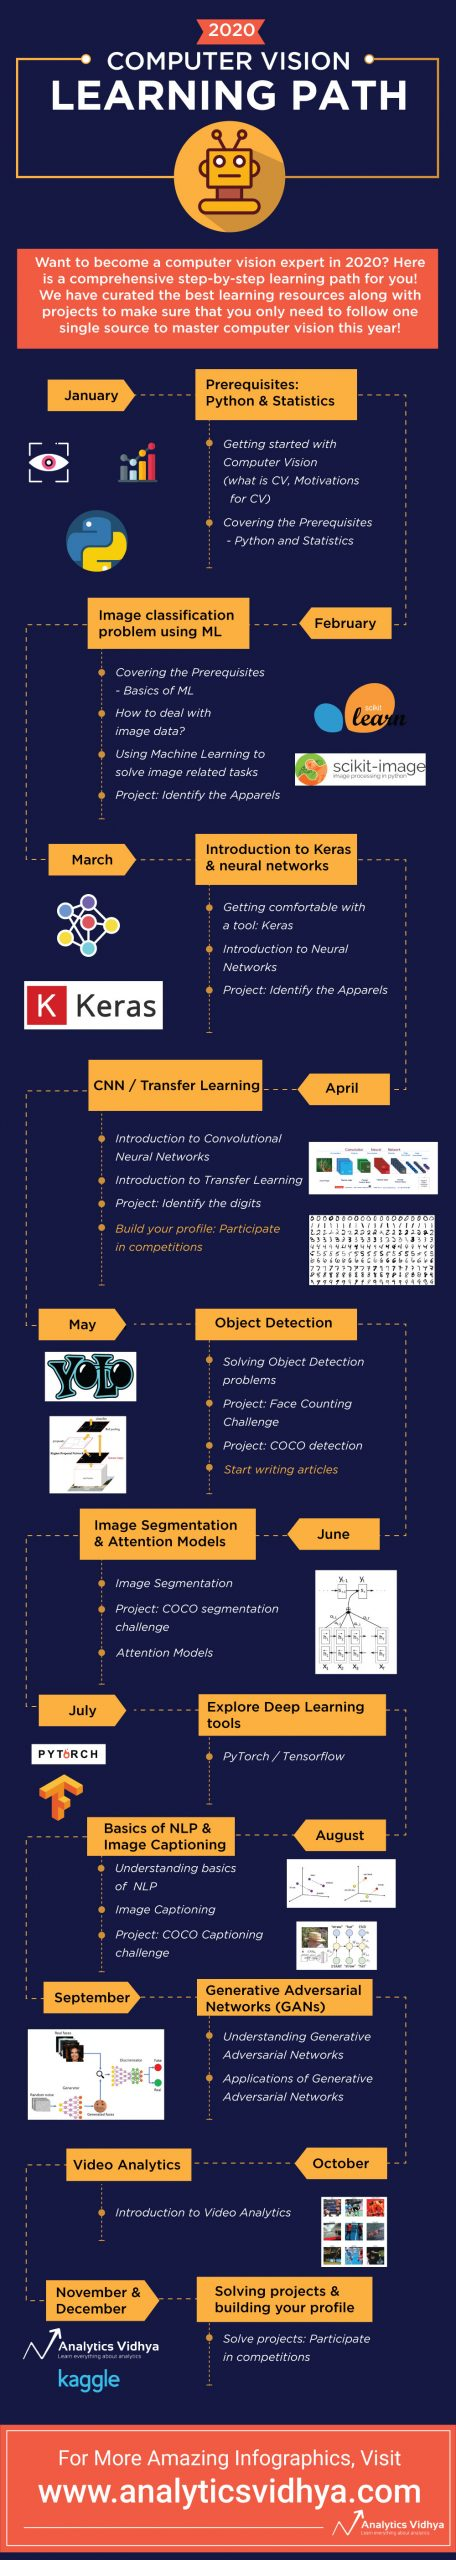 computer-vision-learning-path